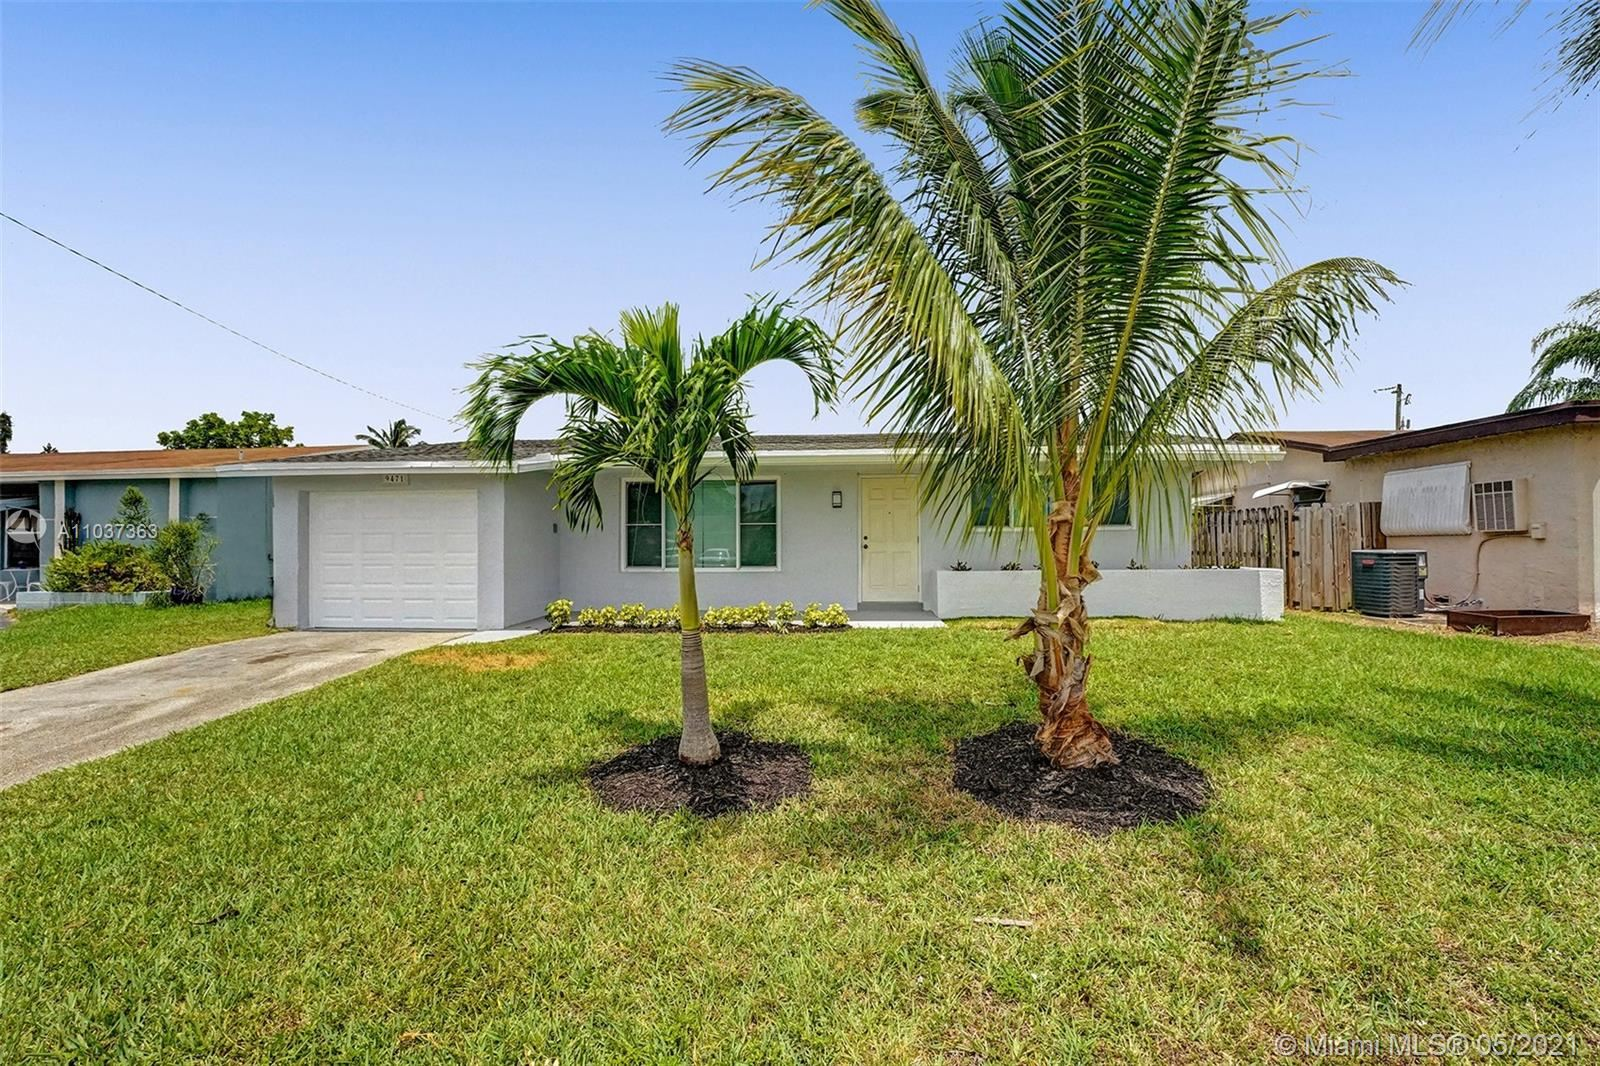 9471 NW 24th PL., Sunrise, FL 33322 - #: A11037363